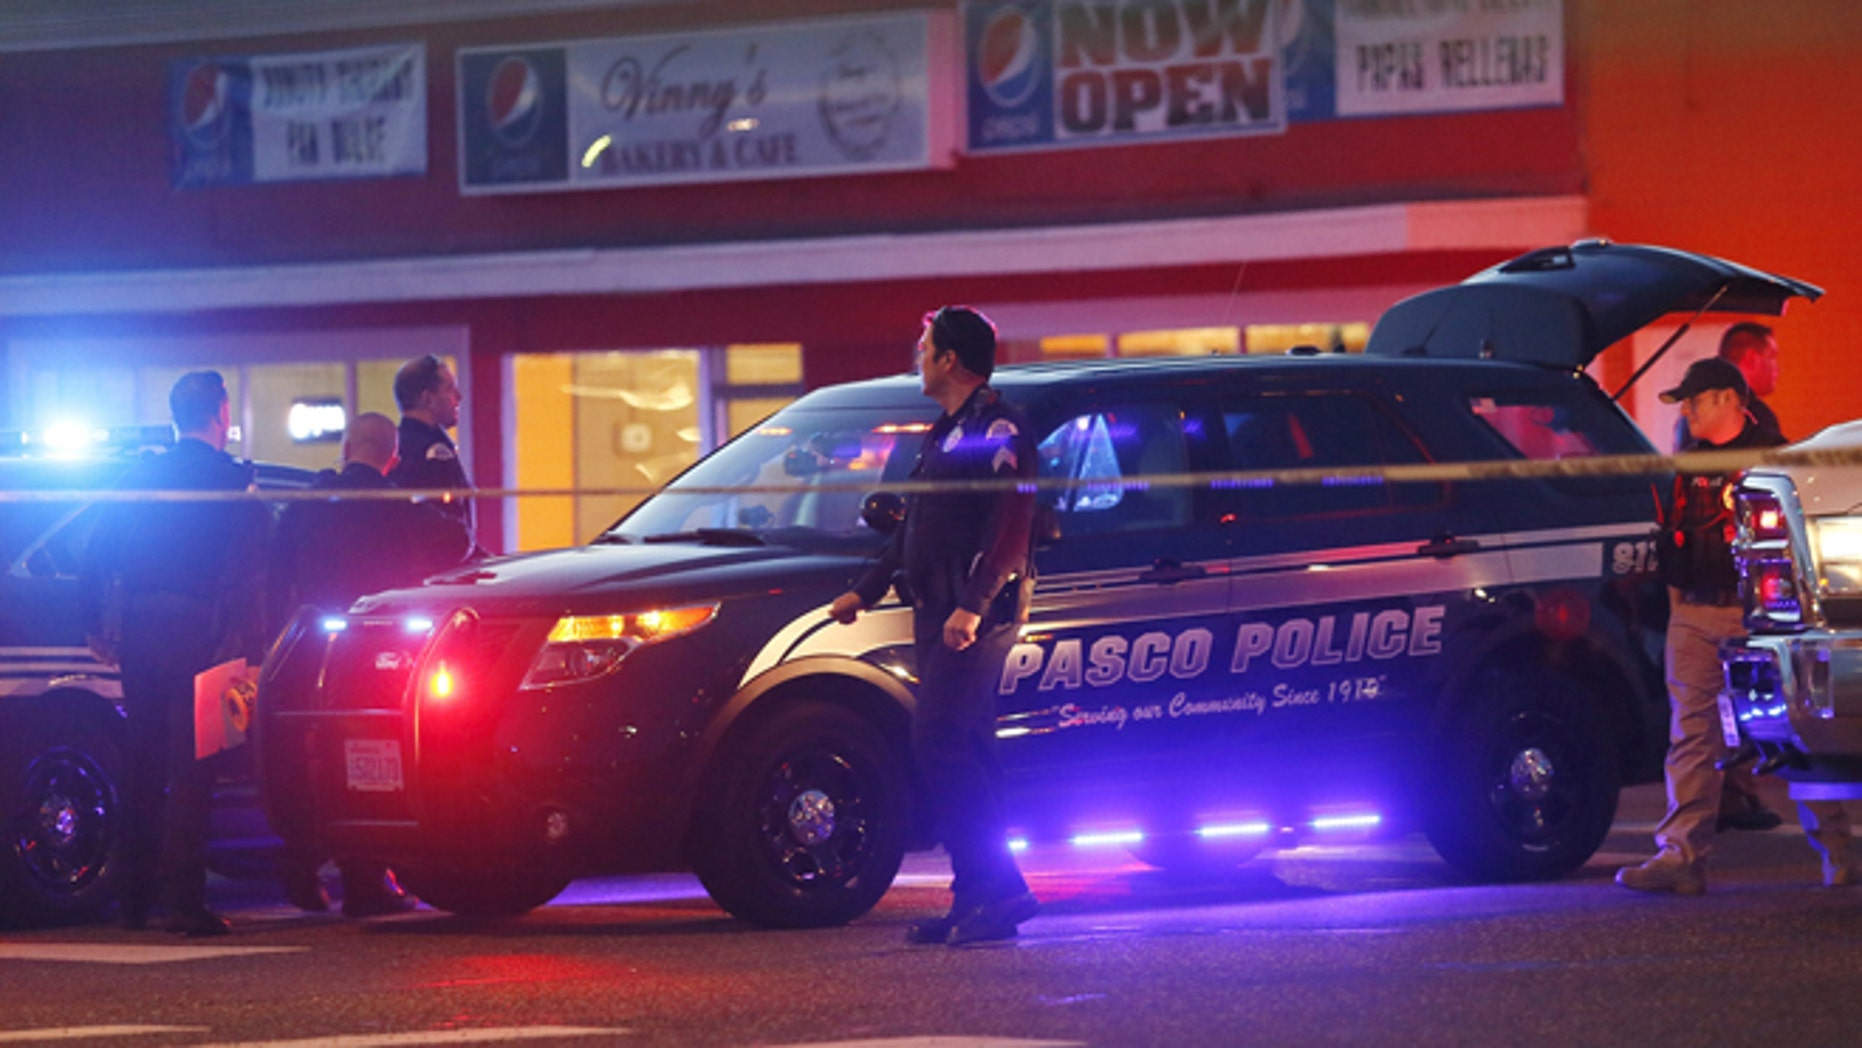 Police investigate the scene of an officer involved shooting Tuesday, Feb. 10. 2015 in Pasco, Wash.